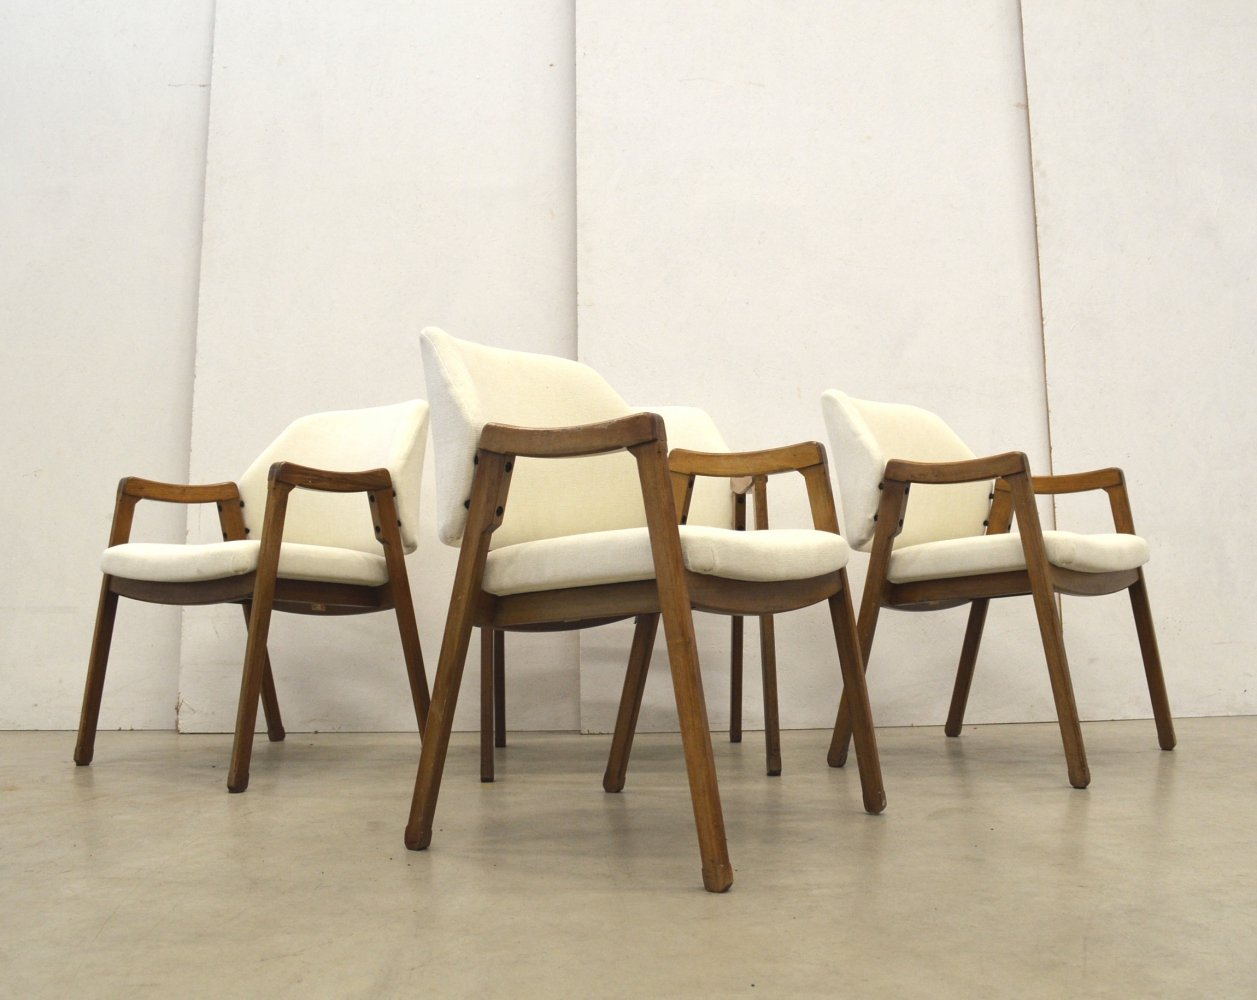 Set of 4 model 814 arm chairs by Ico Parisi for Cassina, 1960s